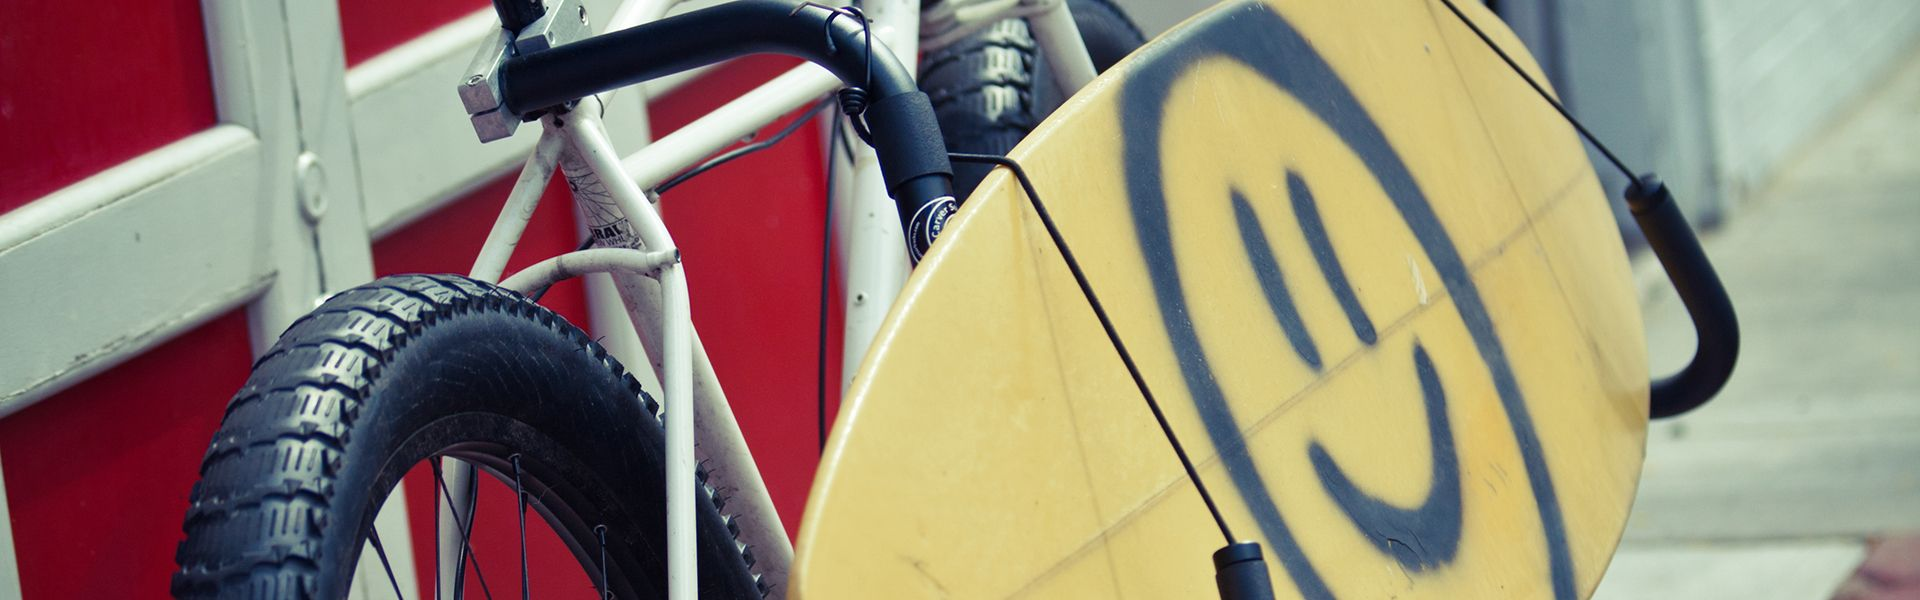 Carver Surfboard Racks For Bicycles | Two Wheels | Pinterest ...